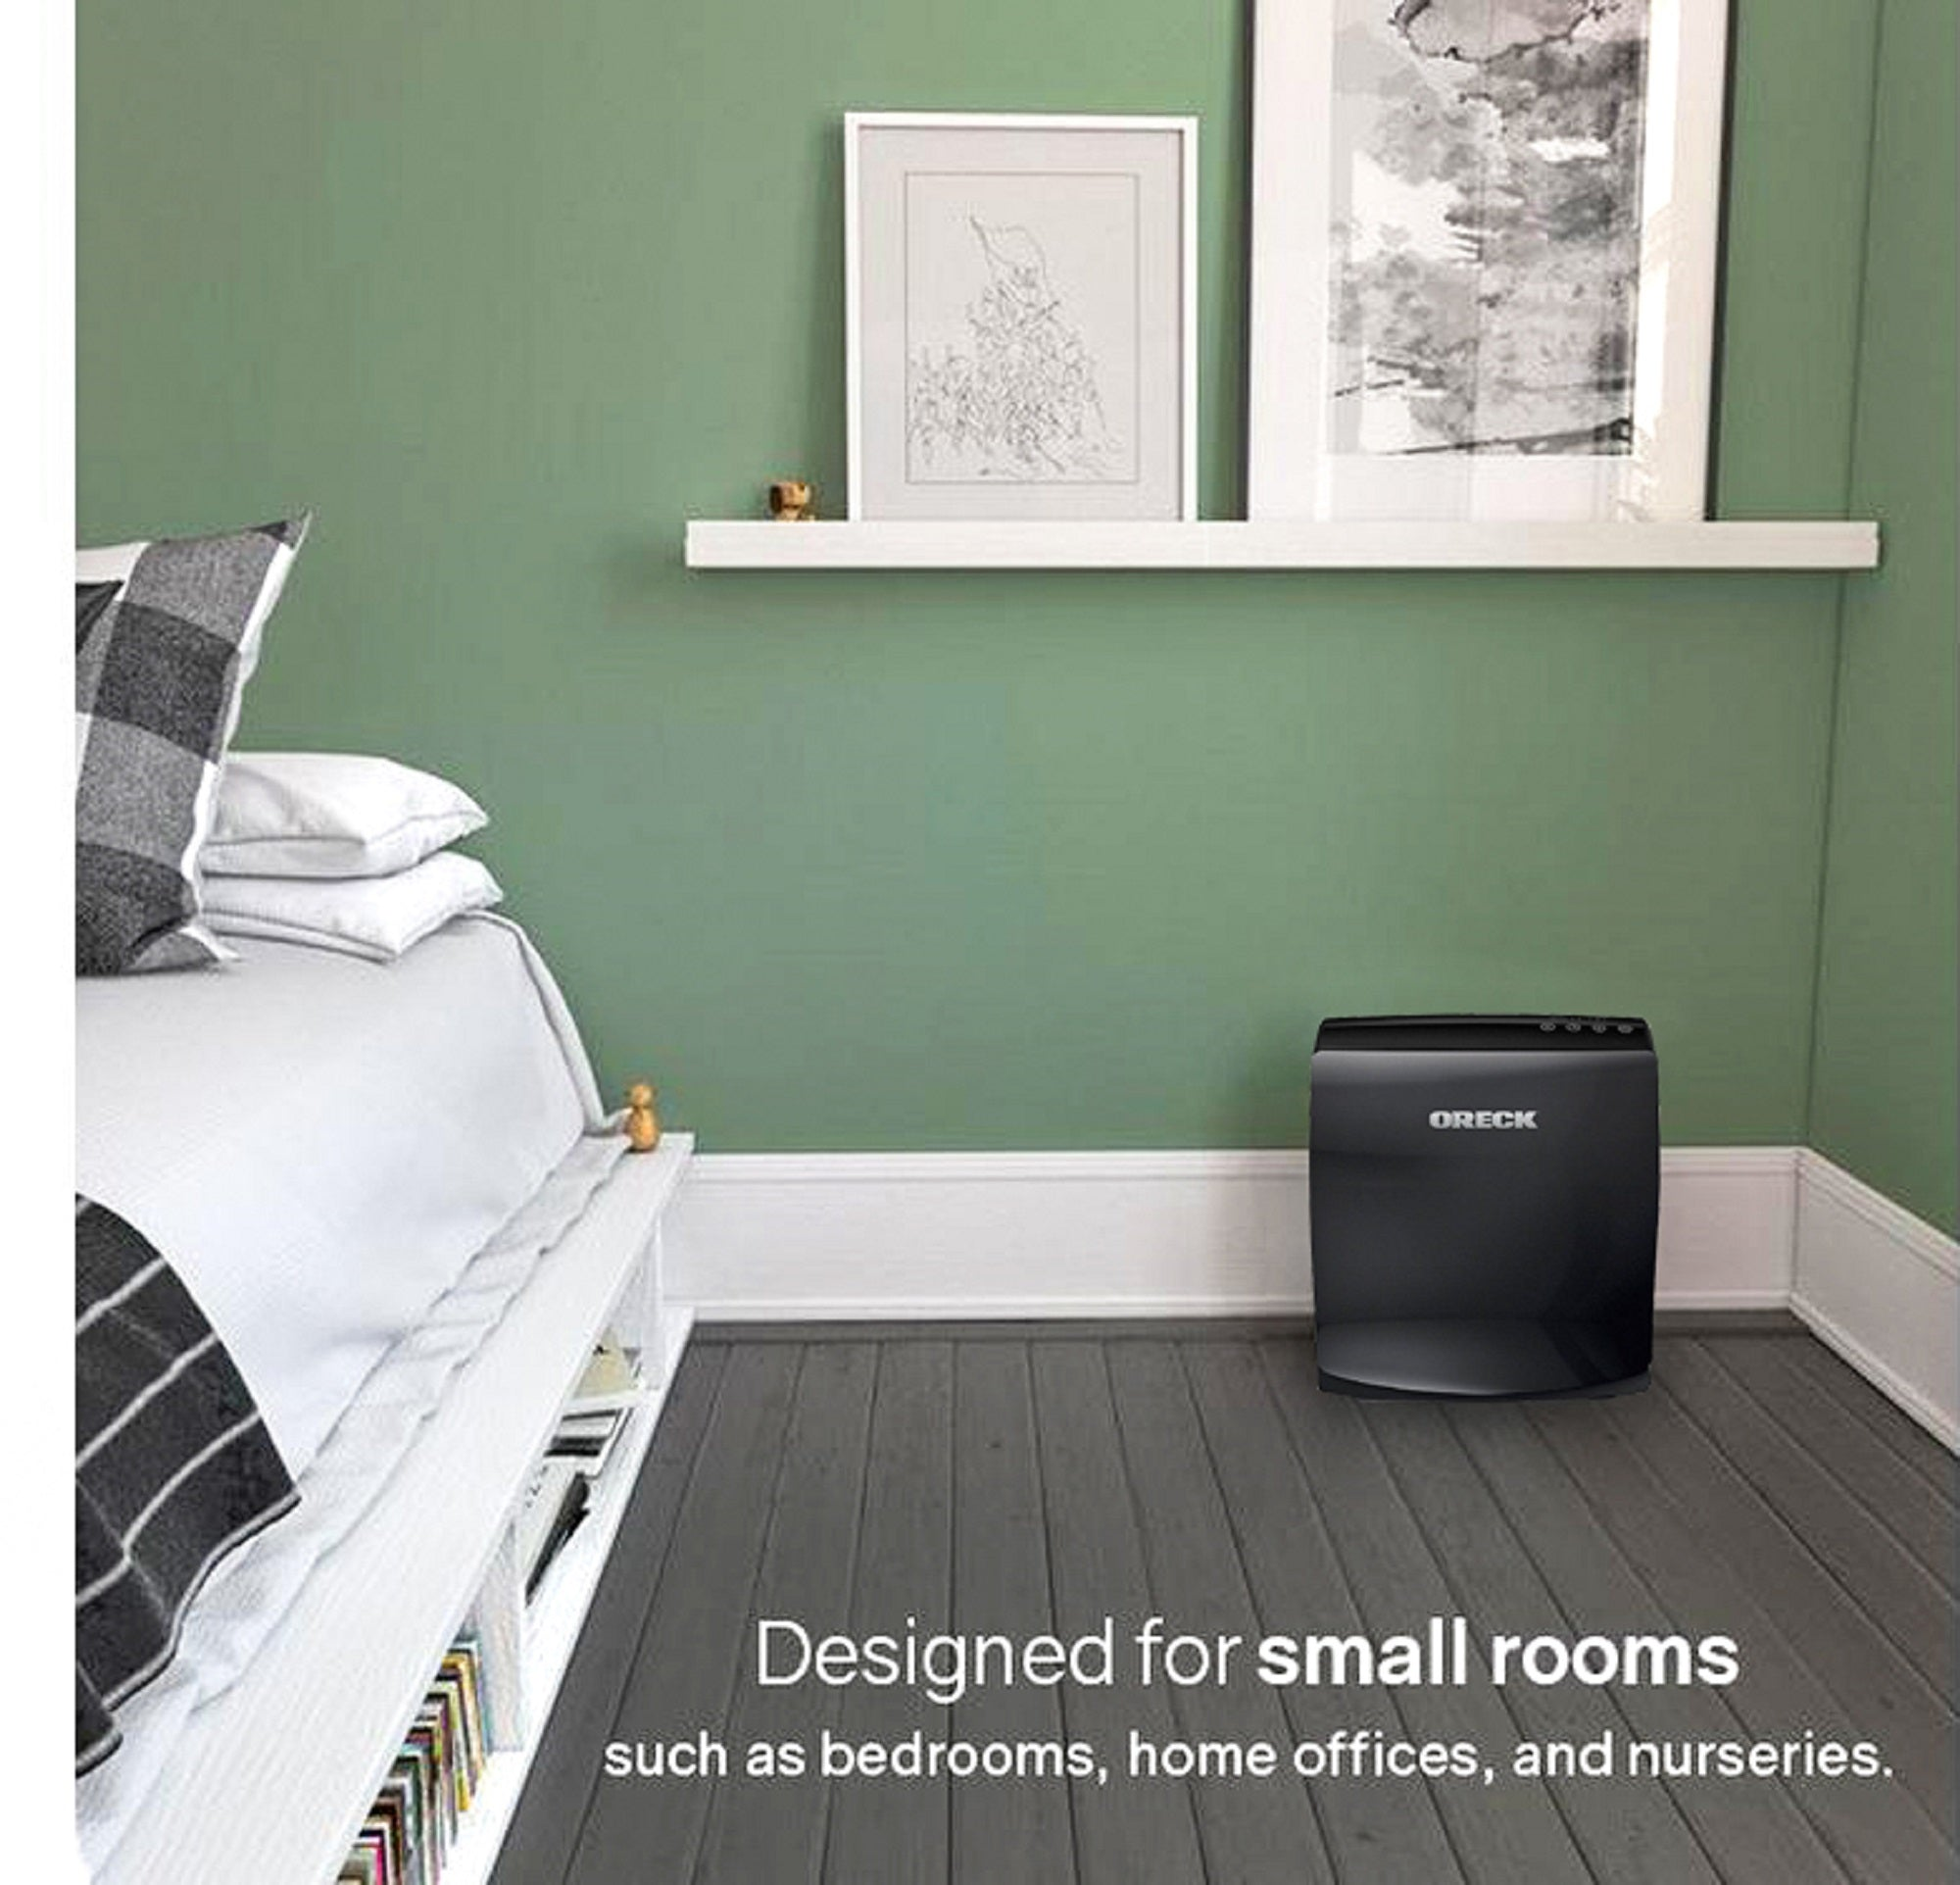 Oreck AirVantage Plus True HEPA, Charcoal and VOC Air Purifier and Allergen Remover For Small To Medium Sized Room WK10052QPC (Black)